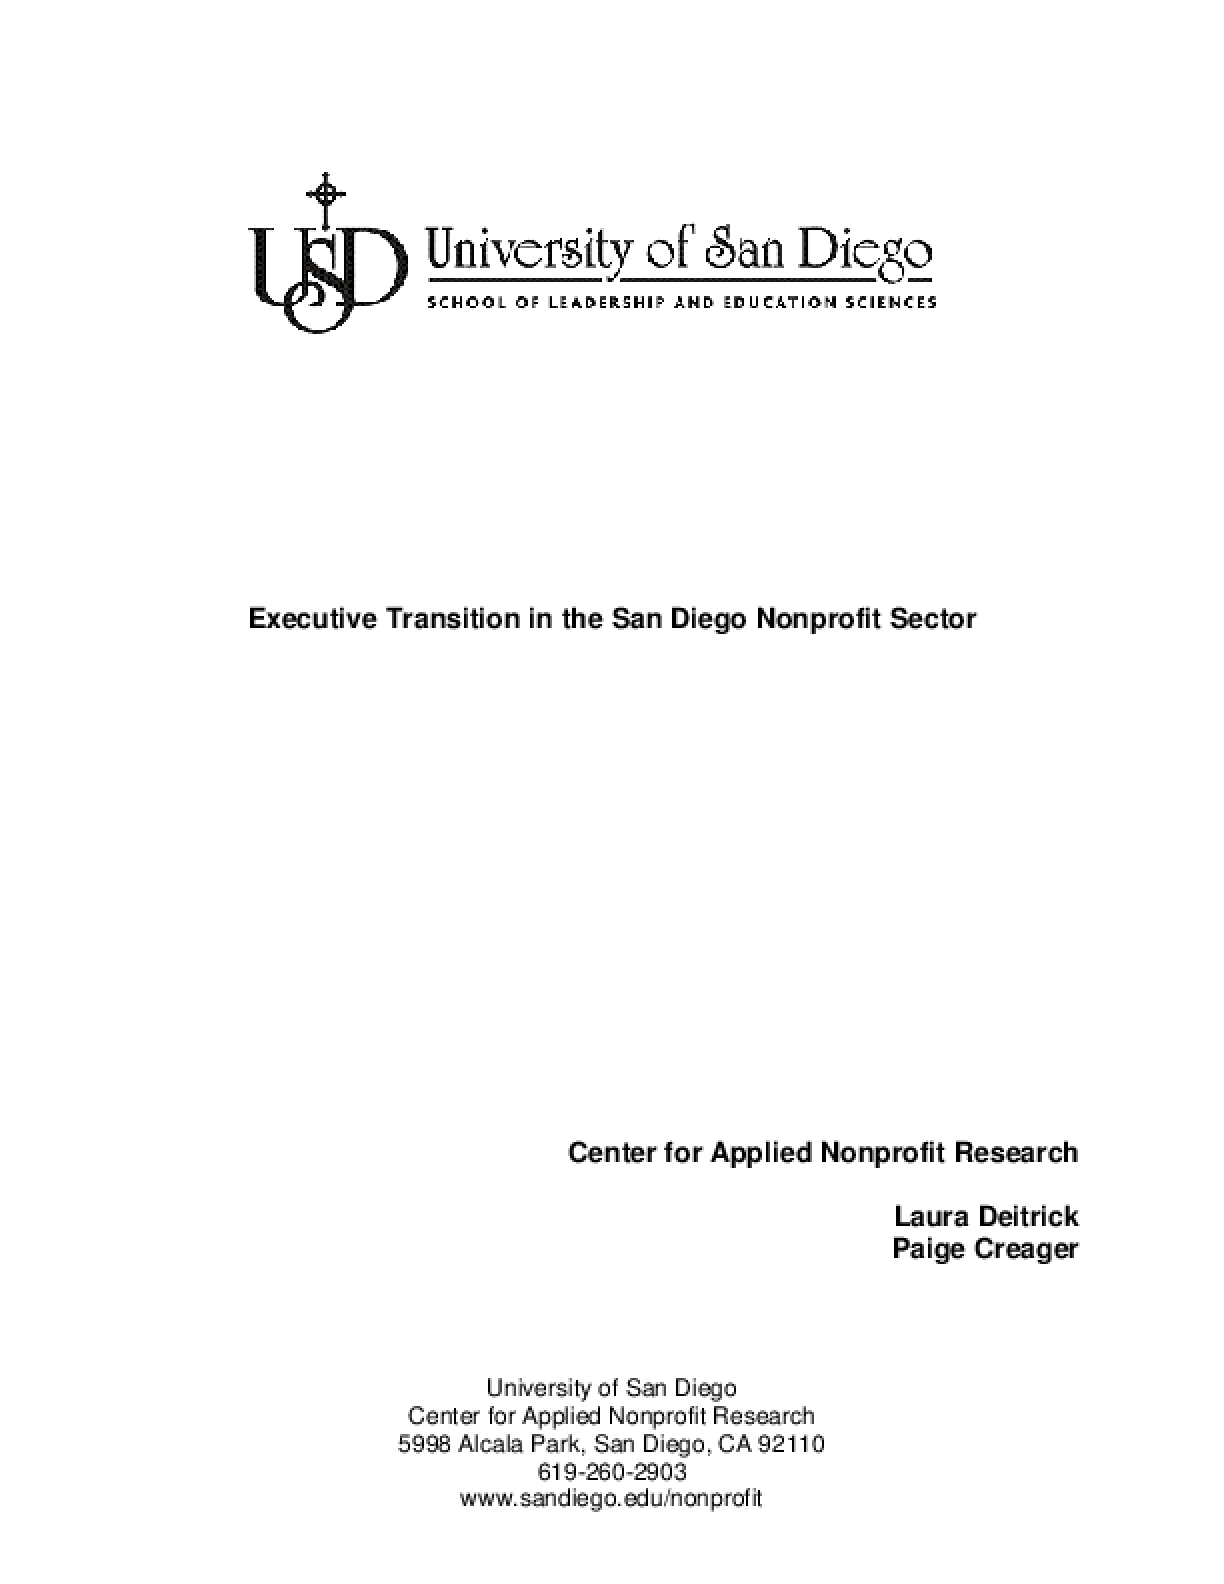 Executive Transition in the San Diego Nonprofit Sector - Full Report